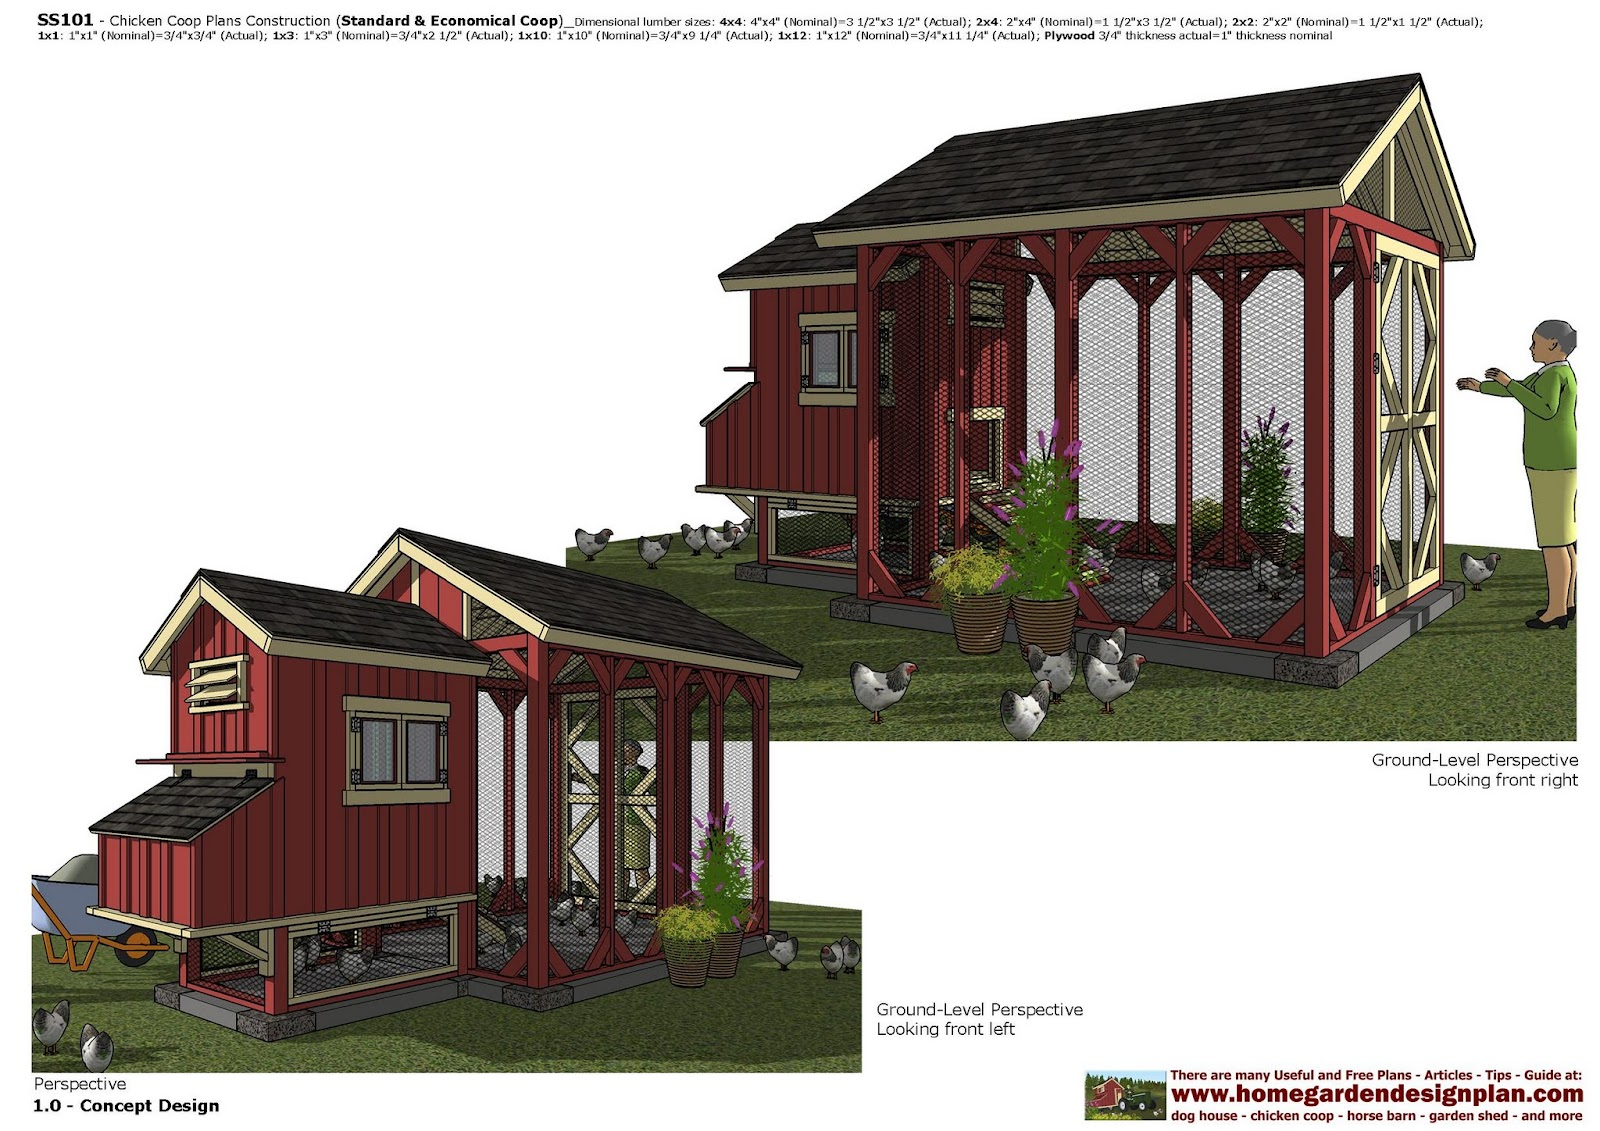 Home Garden Plans Ss101 Chicken Coop Plans Construction: home run architecture